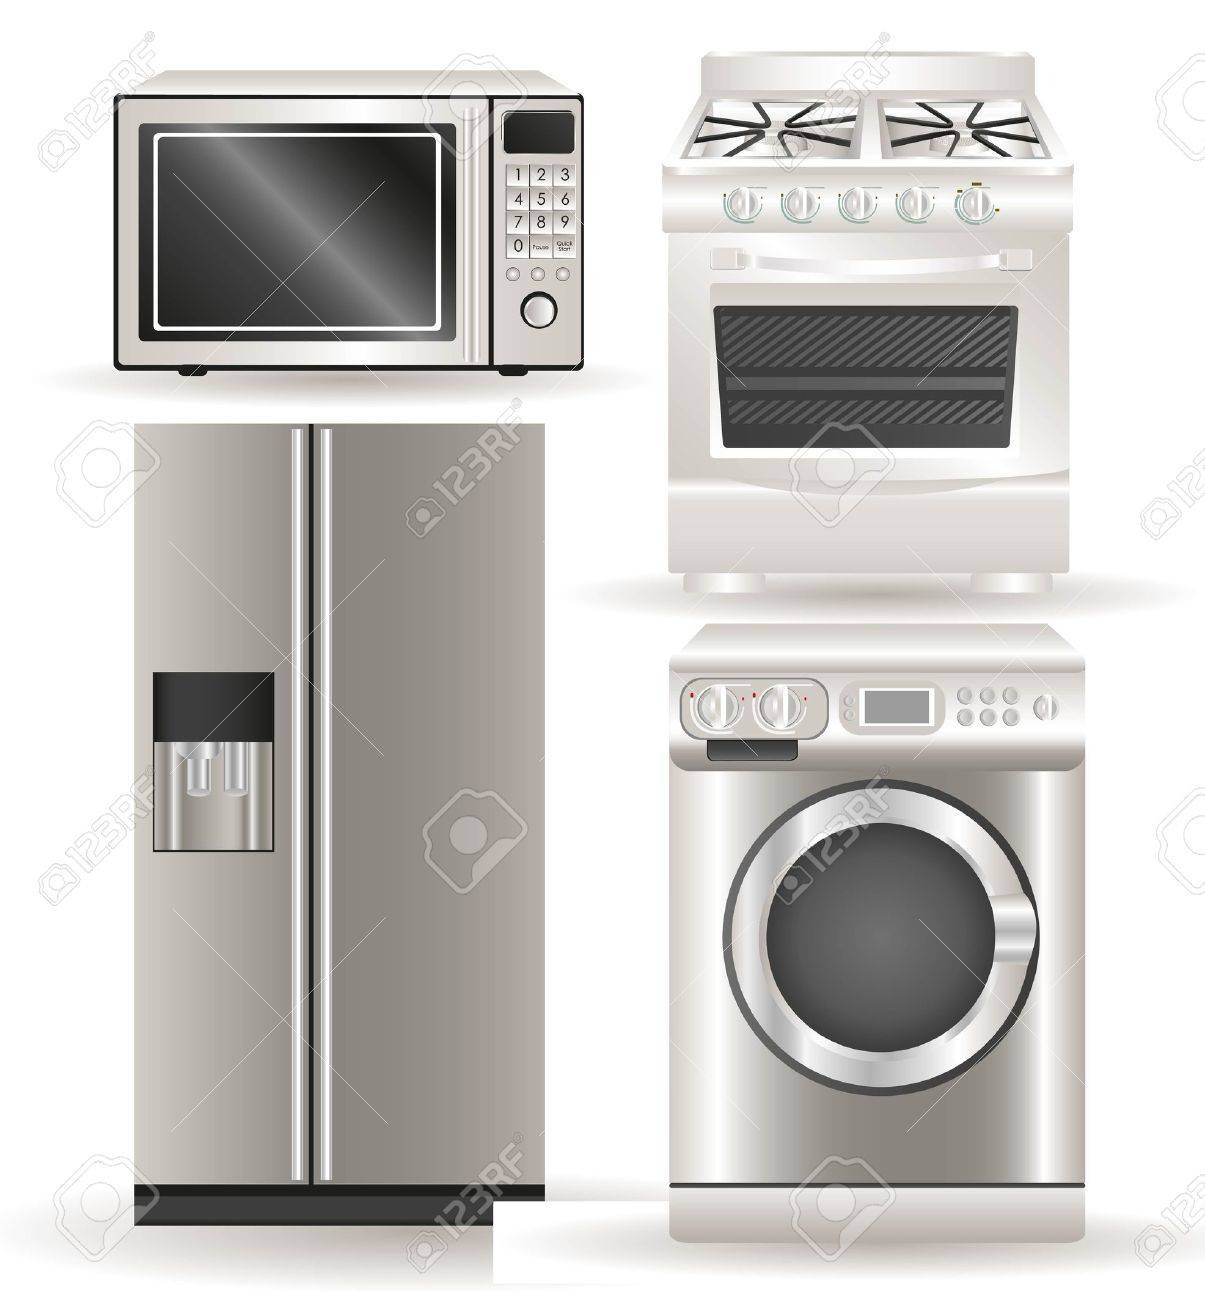 Appliances, contains washing machine, stove, microwave and refrigerator Stock Vector - 14083176